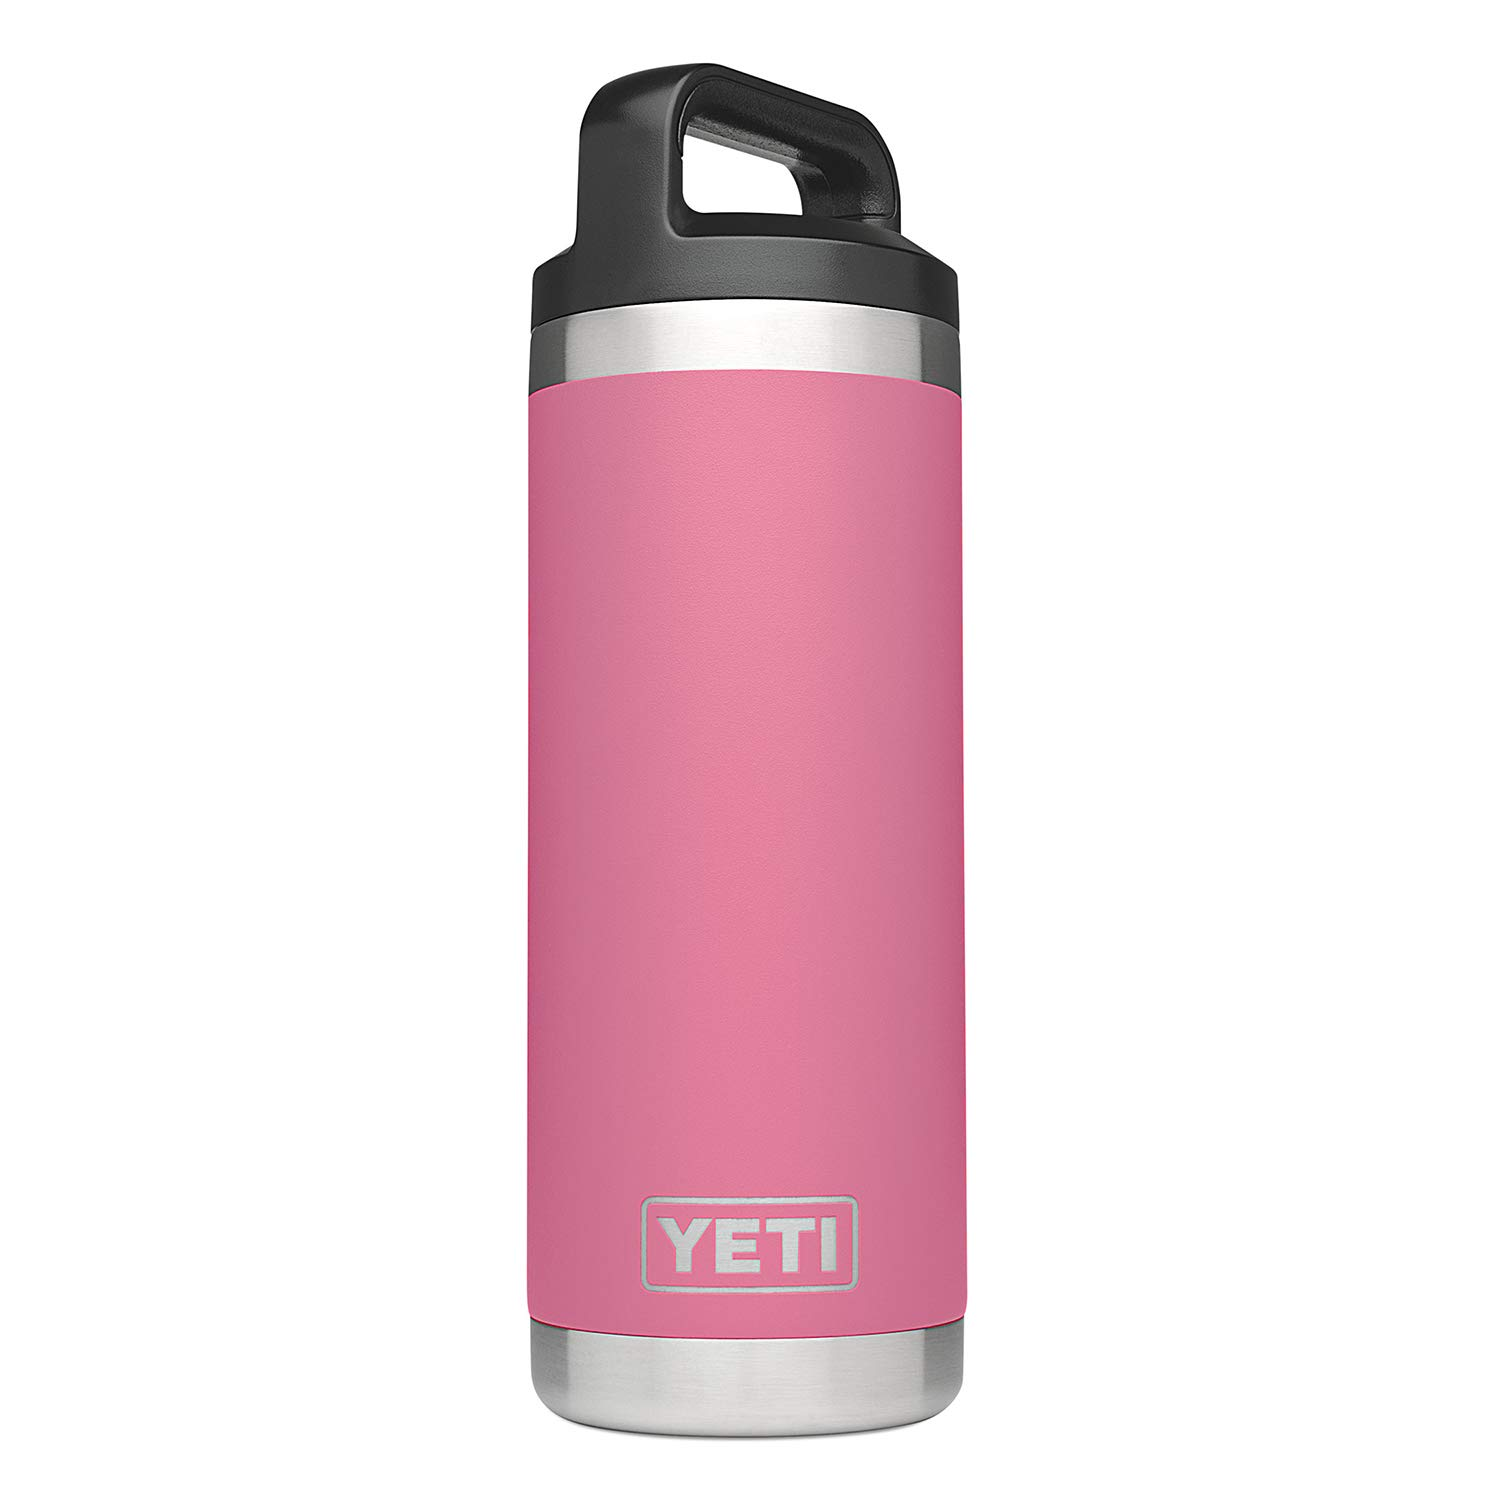 YETI Rambler 18 oz Vacuum Insulated Stainless Steel Bottle with Cap, Harbor Pink